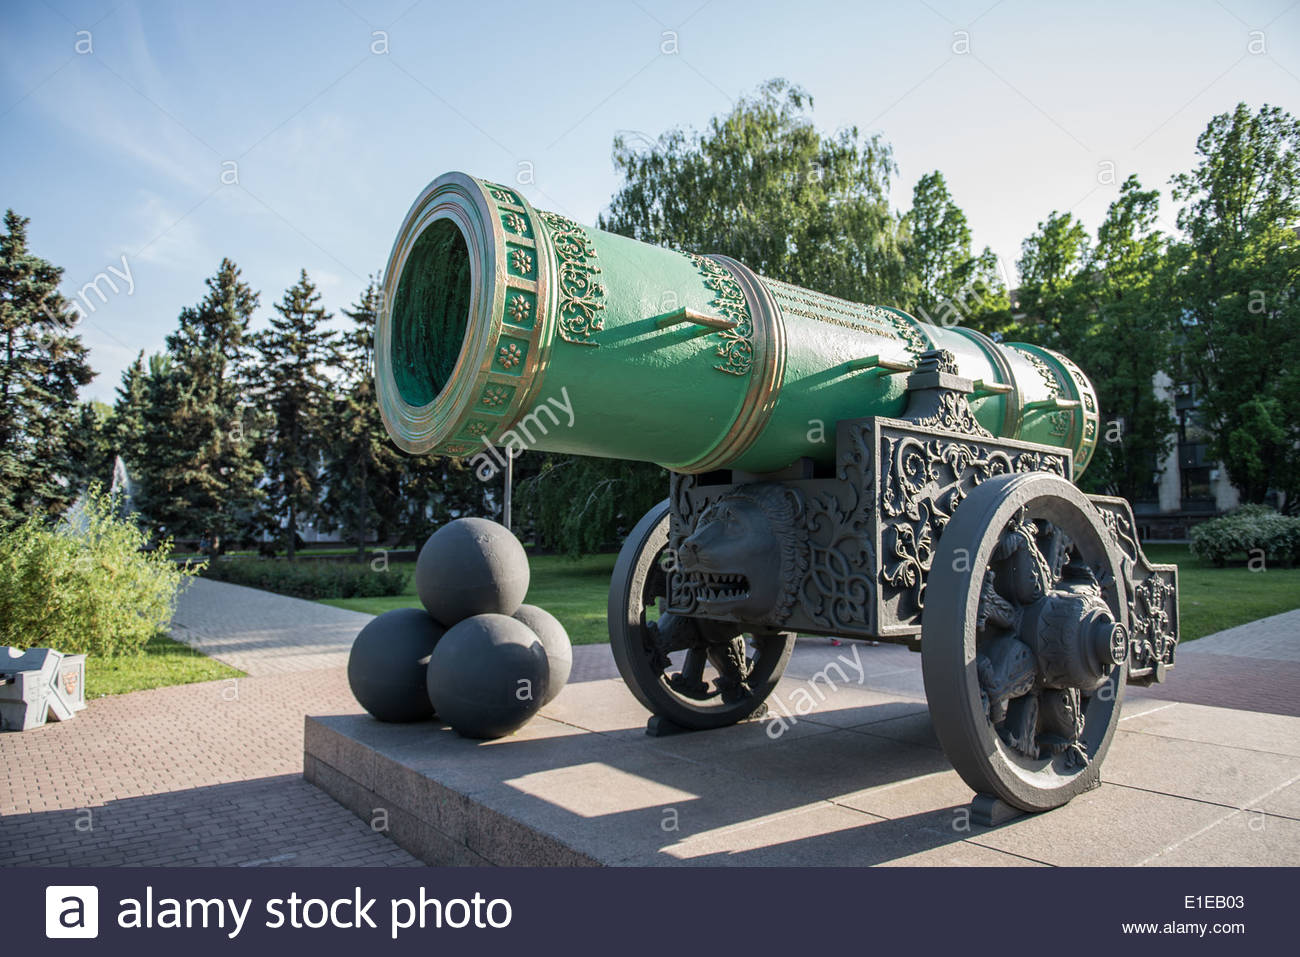 Tsar Cannon Moscow, Tsar Cannon (replica of famous cannon in Moscow) in Donetsk ...